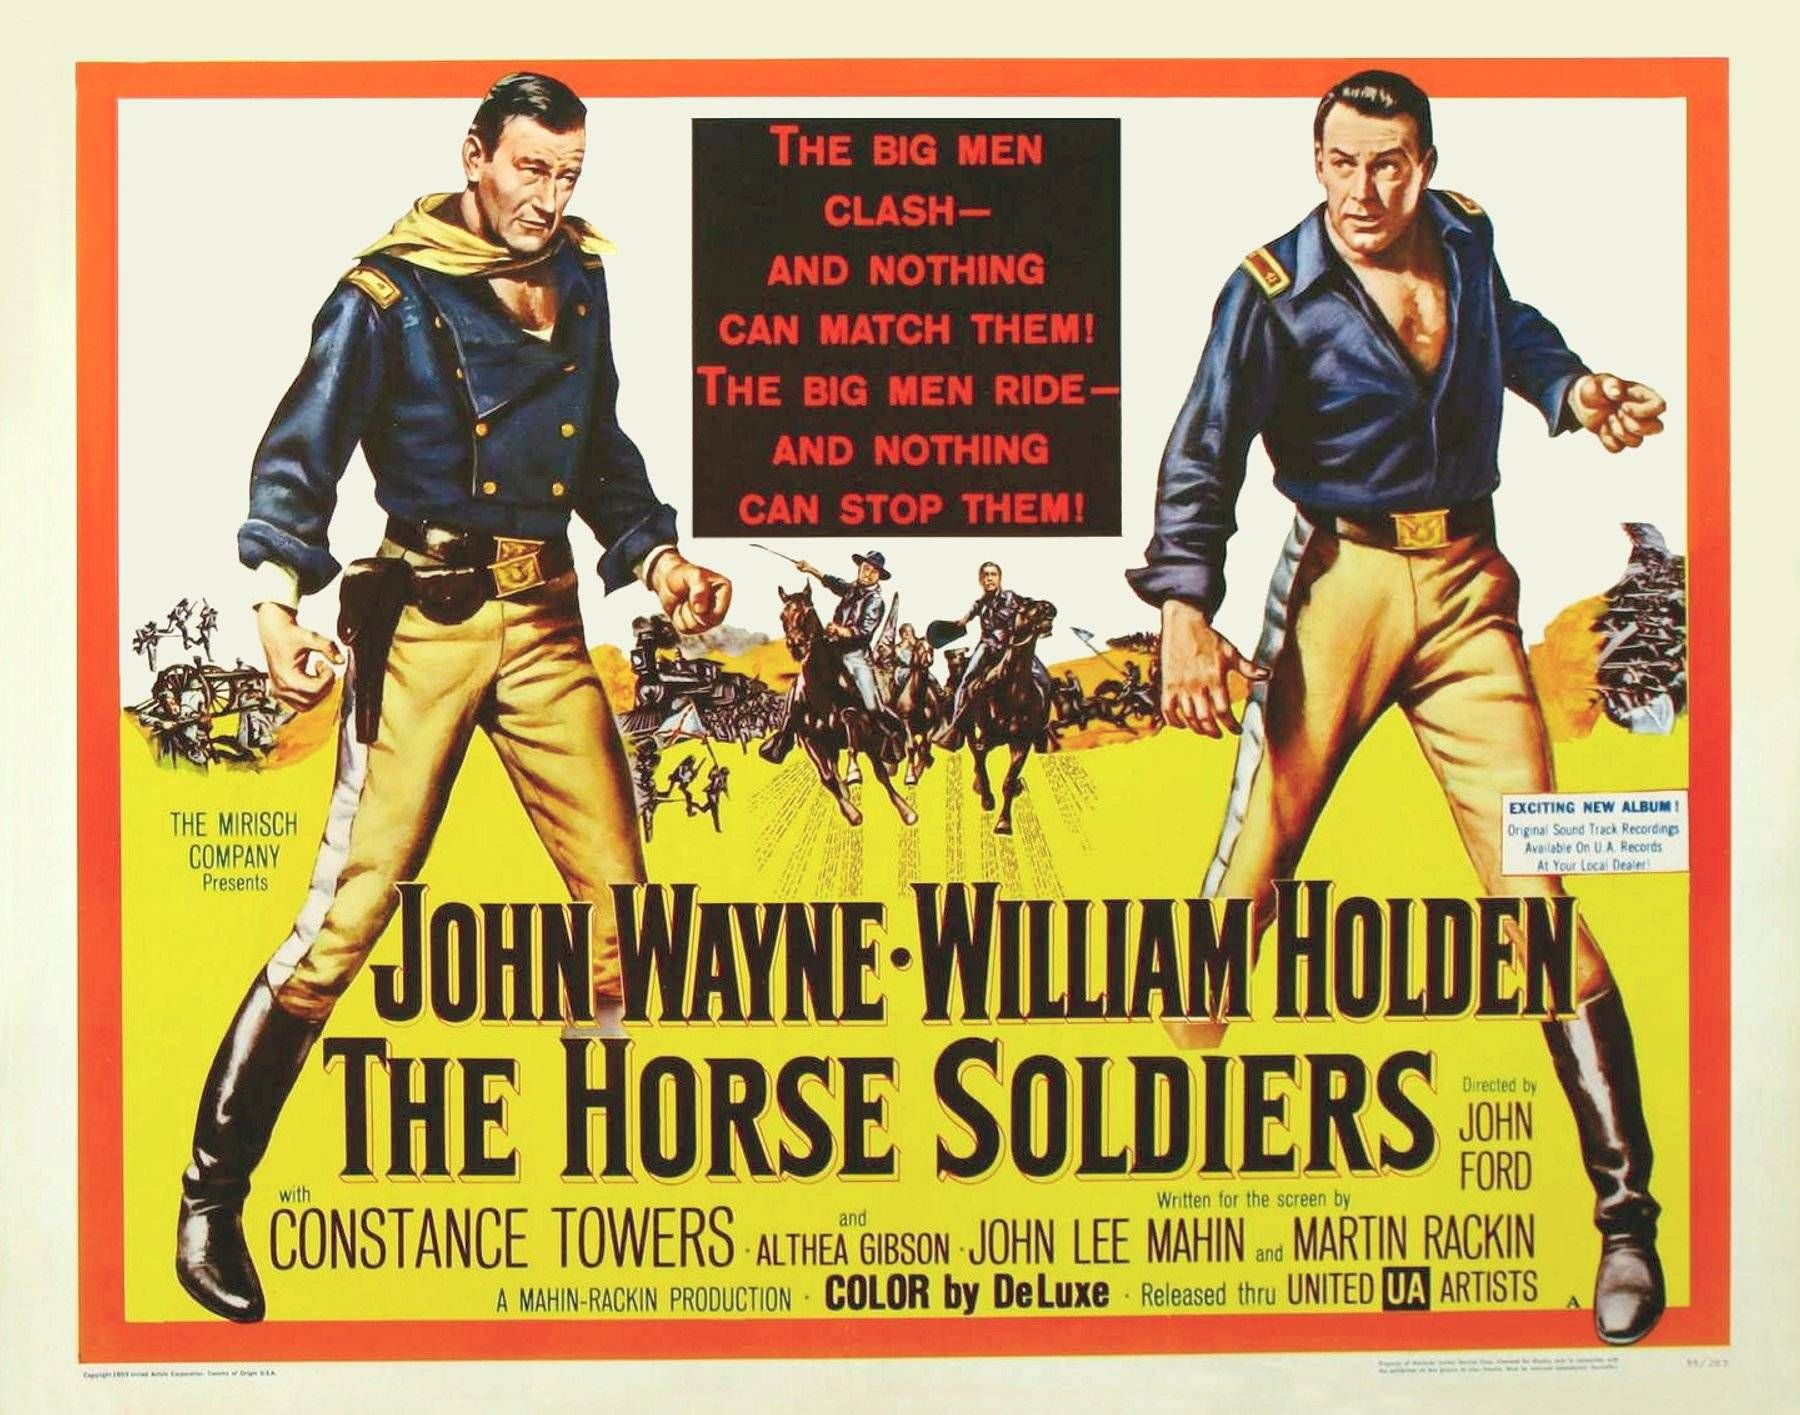 Directed By John Ford 1971 Film | ... film directed by John Ford. It stars John Wayne and William Holden. It